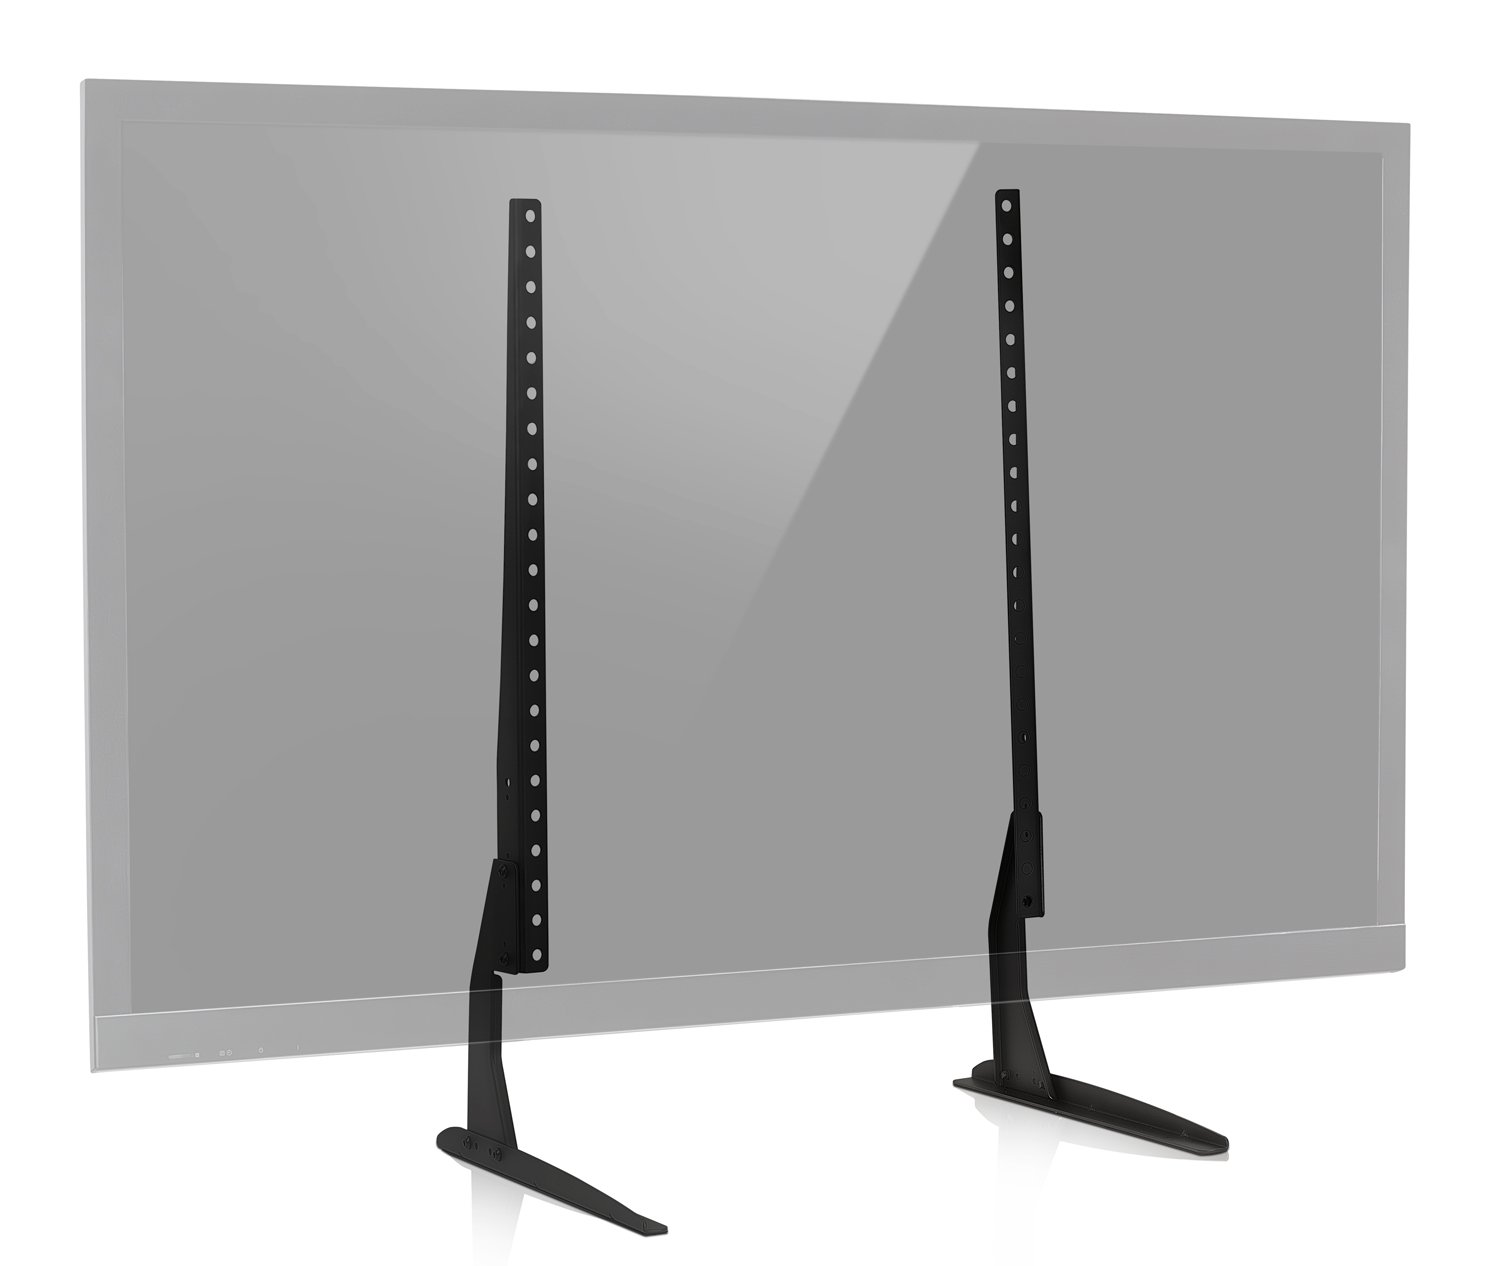 Mount-It! Universal TV Stand Base Replacement, Table top Pedestal Mount Fits 32 37 40 42 47 50 55 60 inch LCD LED PLASMA TVs, 110 Lb Capacity, VESA 800 x 400mm (MI-849)